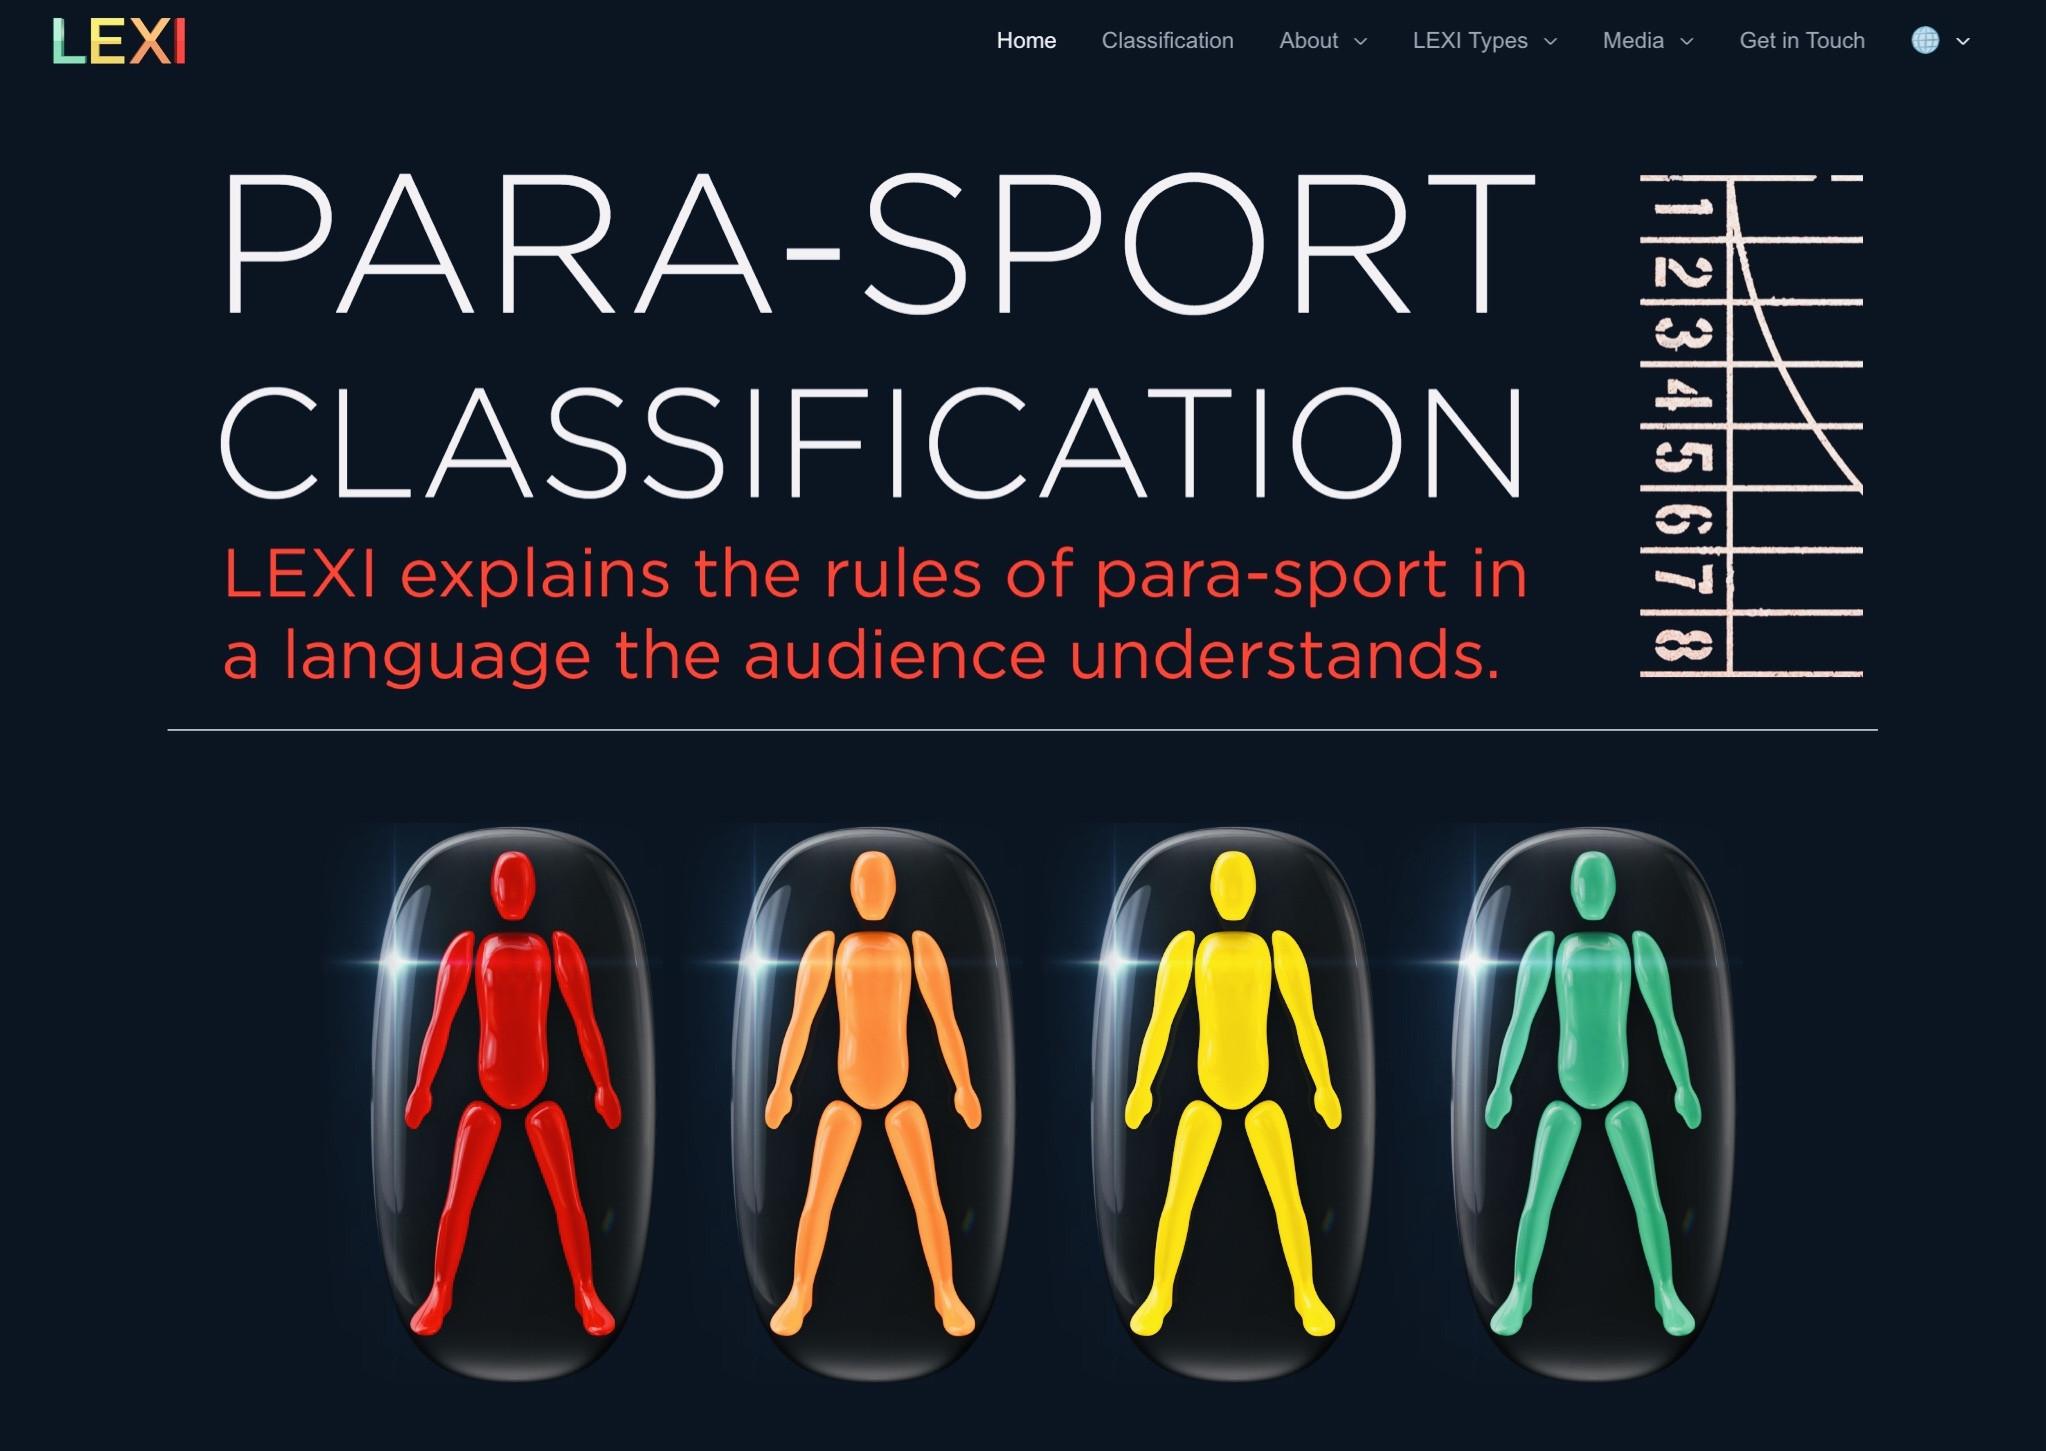 New website created for Paralympic classification tool LEXI